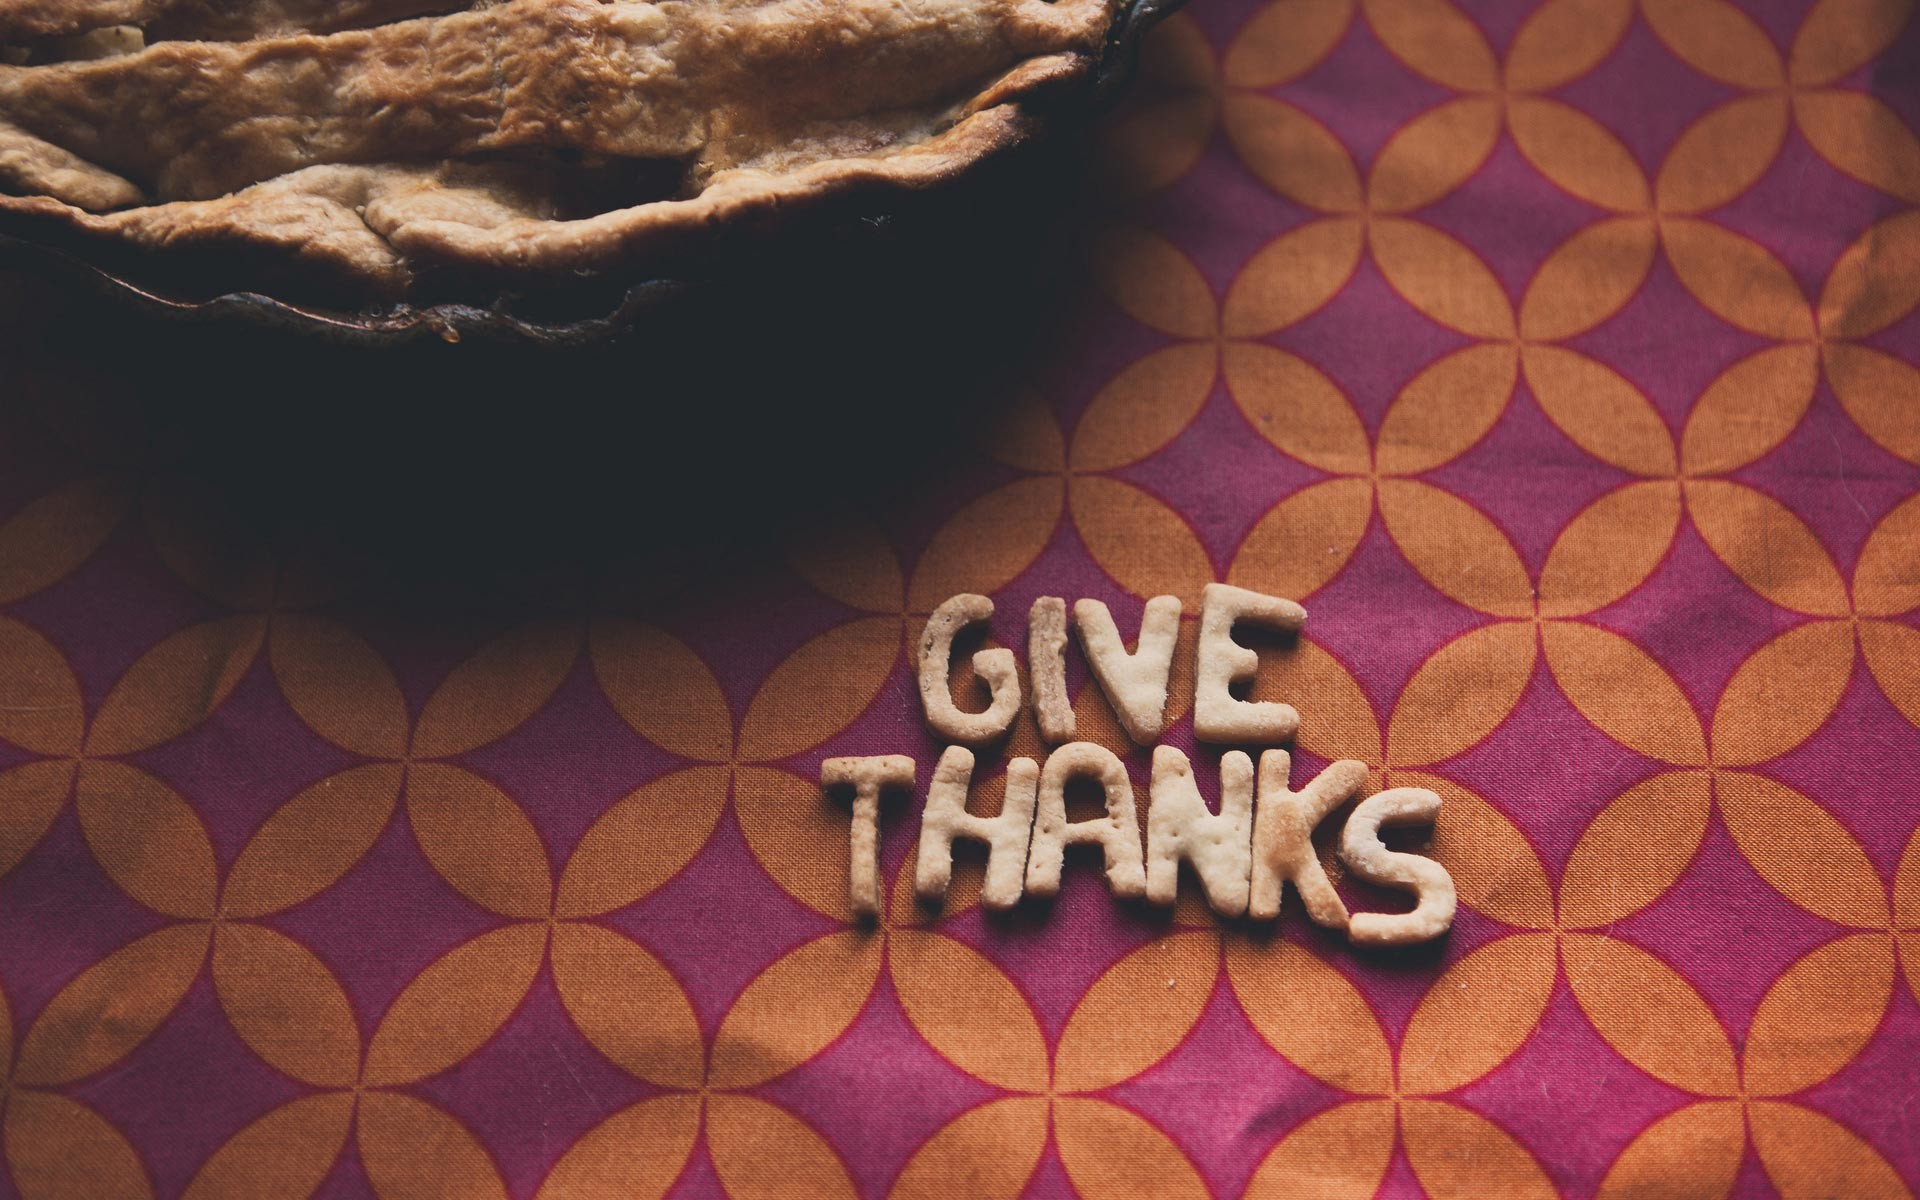 1920x1200 Give-Thanks-2014-Thanksgiving-Image